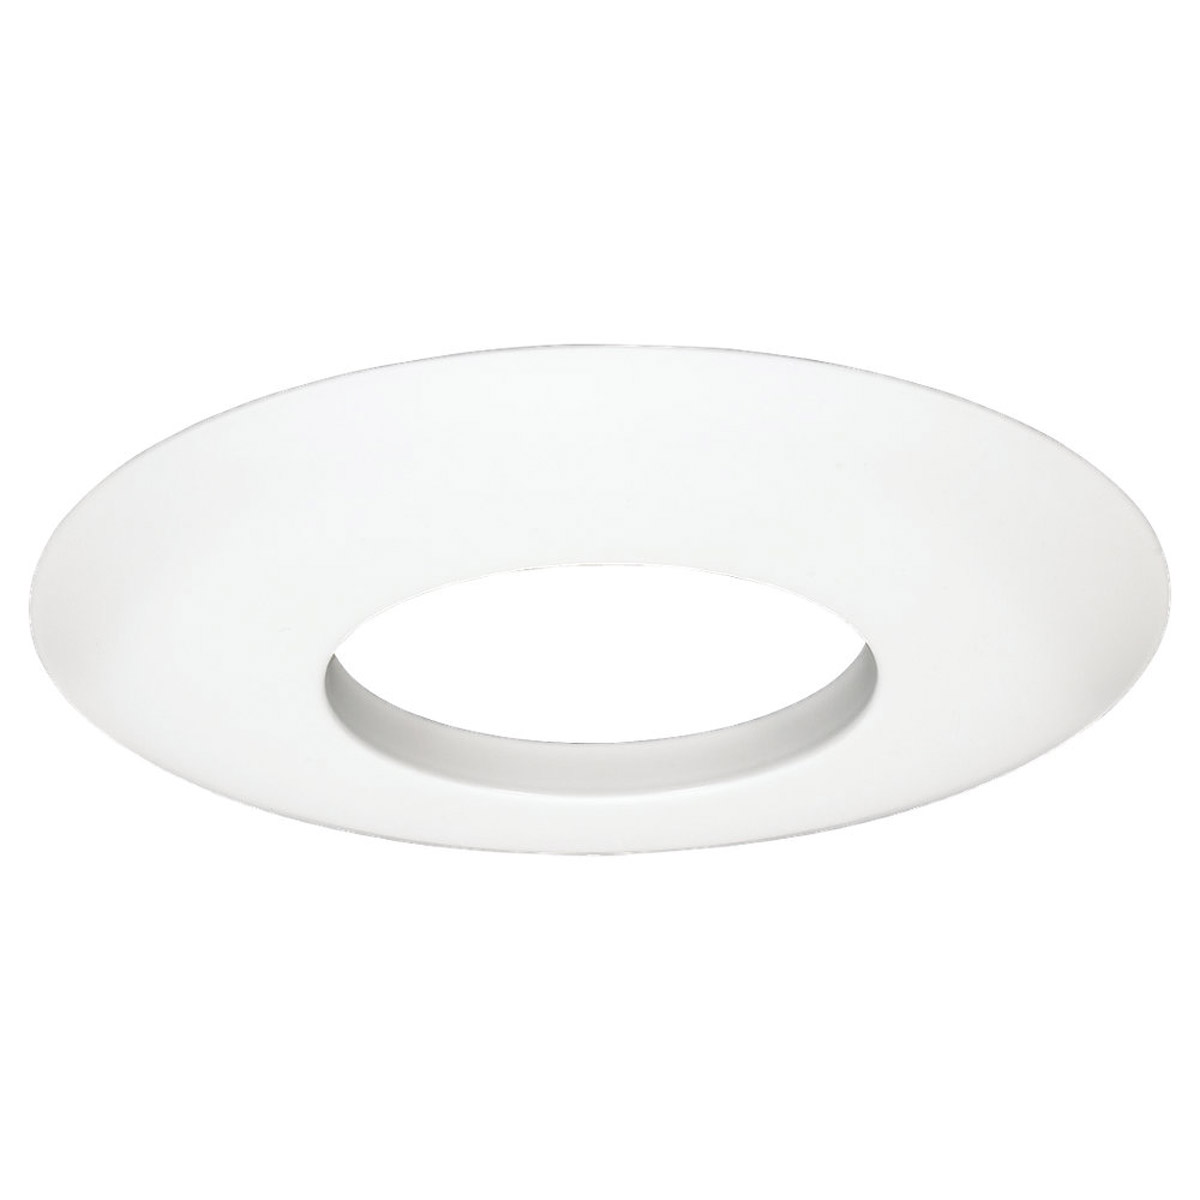 Sea Gull Lighting Signature Recessed Trim Only in White 1120-15